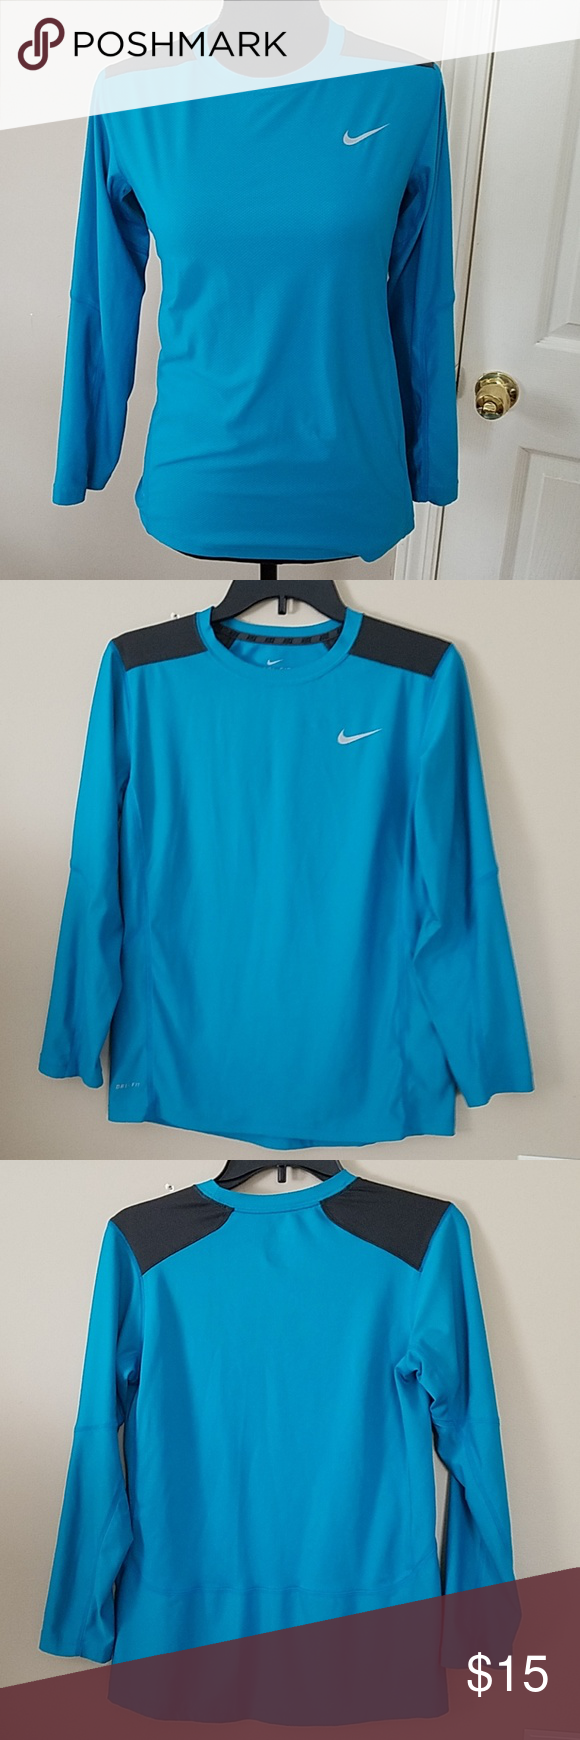 1ce457d2cdd25 Women's Nike Dri-Fit Turquoise Long sleeve shirt L Women's Nike Dri ...